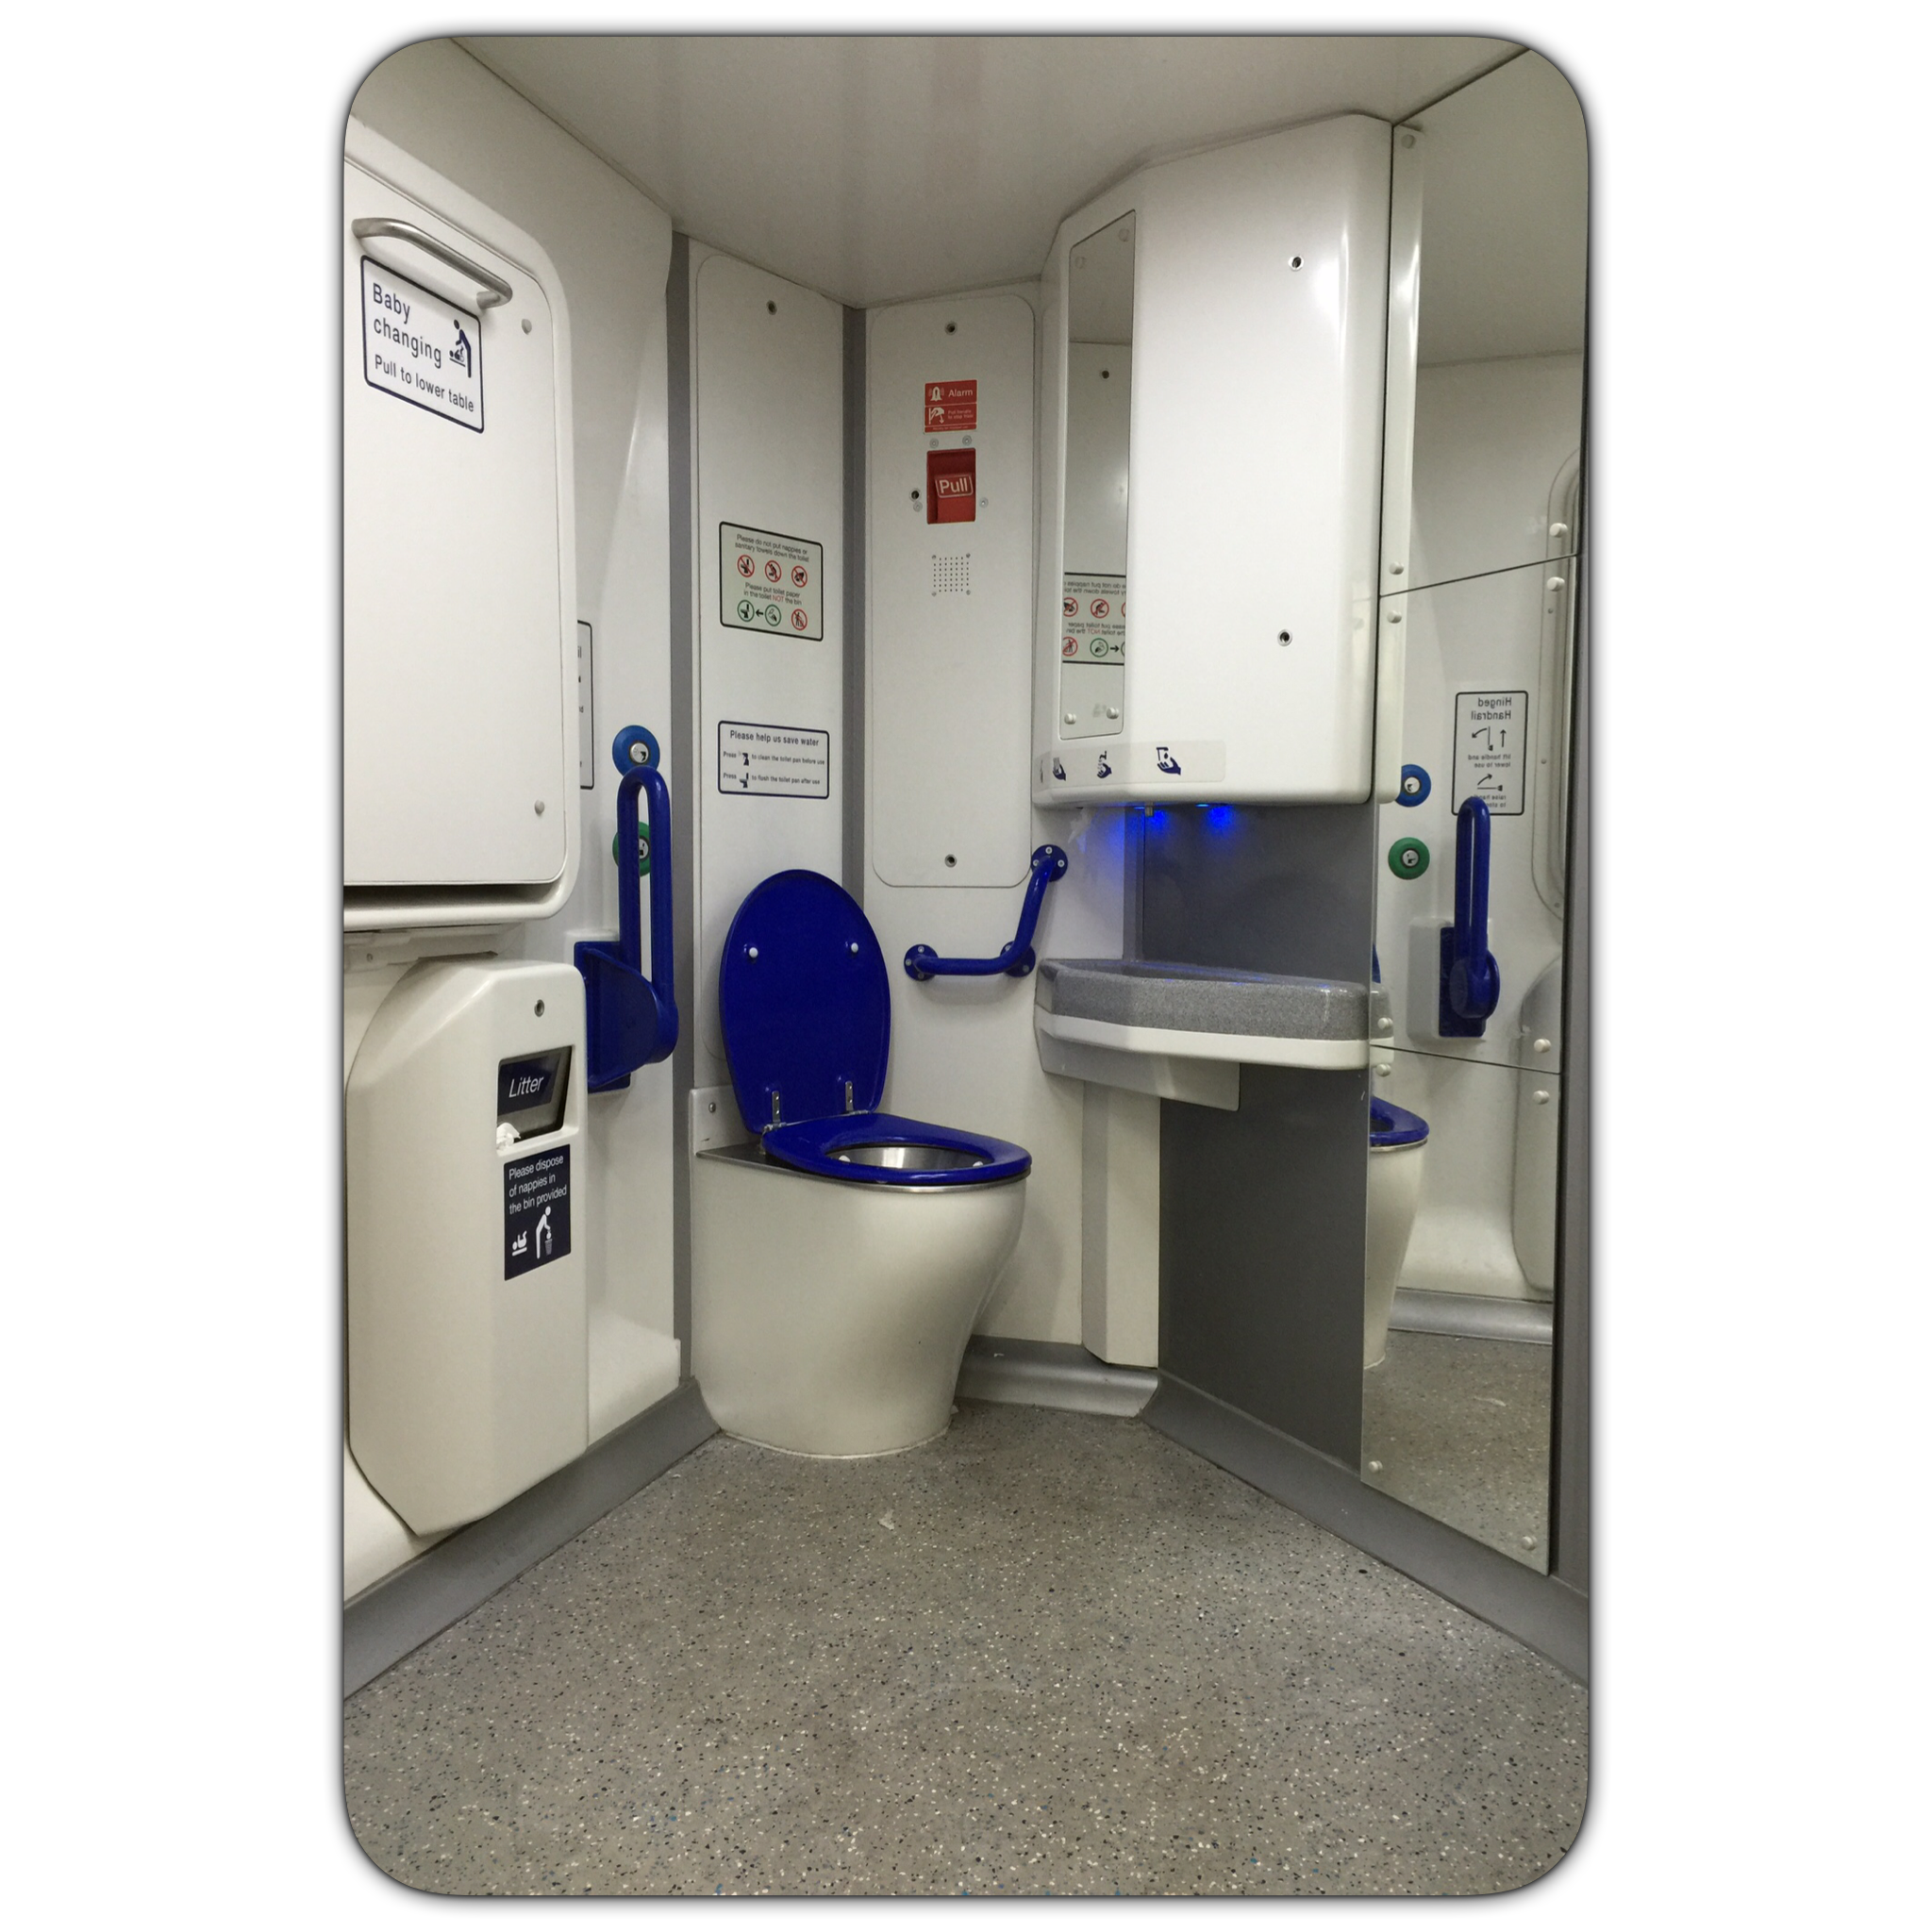 If I needed the loo I d have to get staff to cancel the ramp at my  destination  and make new arrangements for me to. Stories   The world of accessible toilets